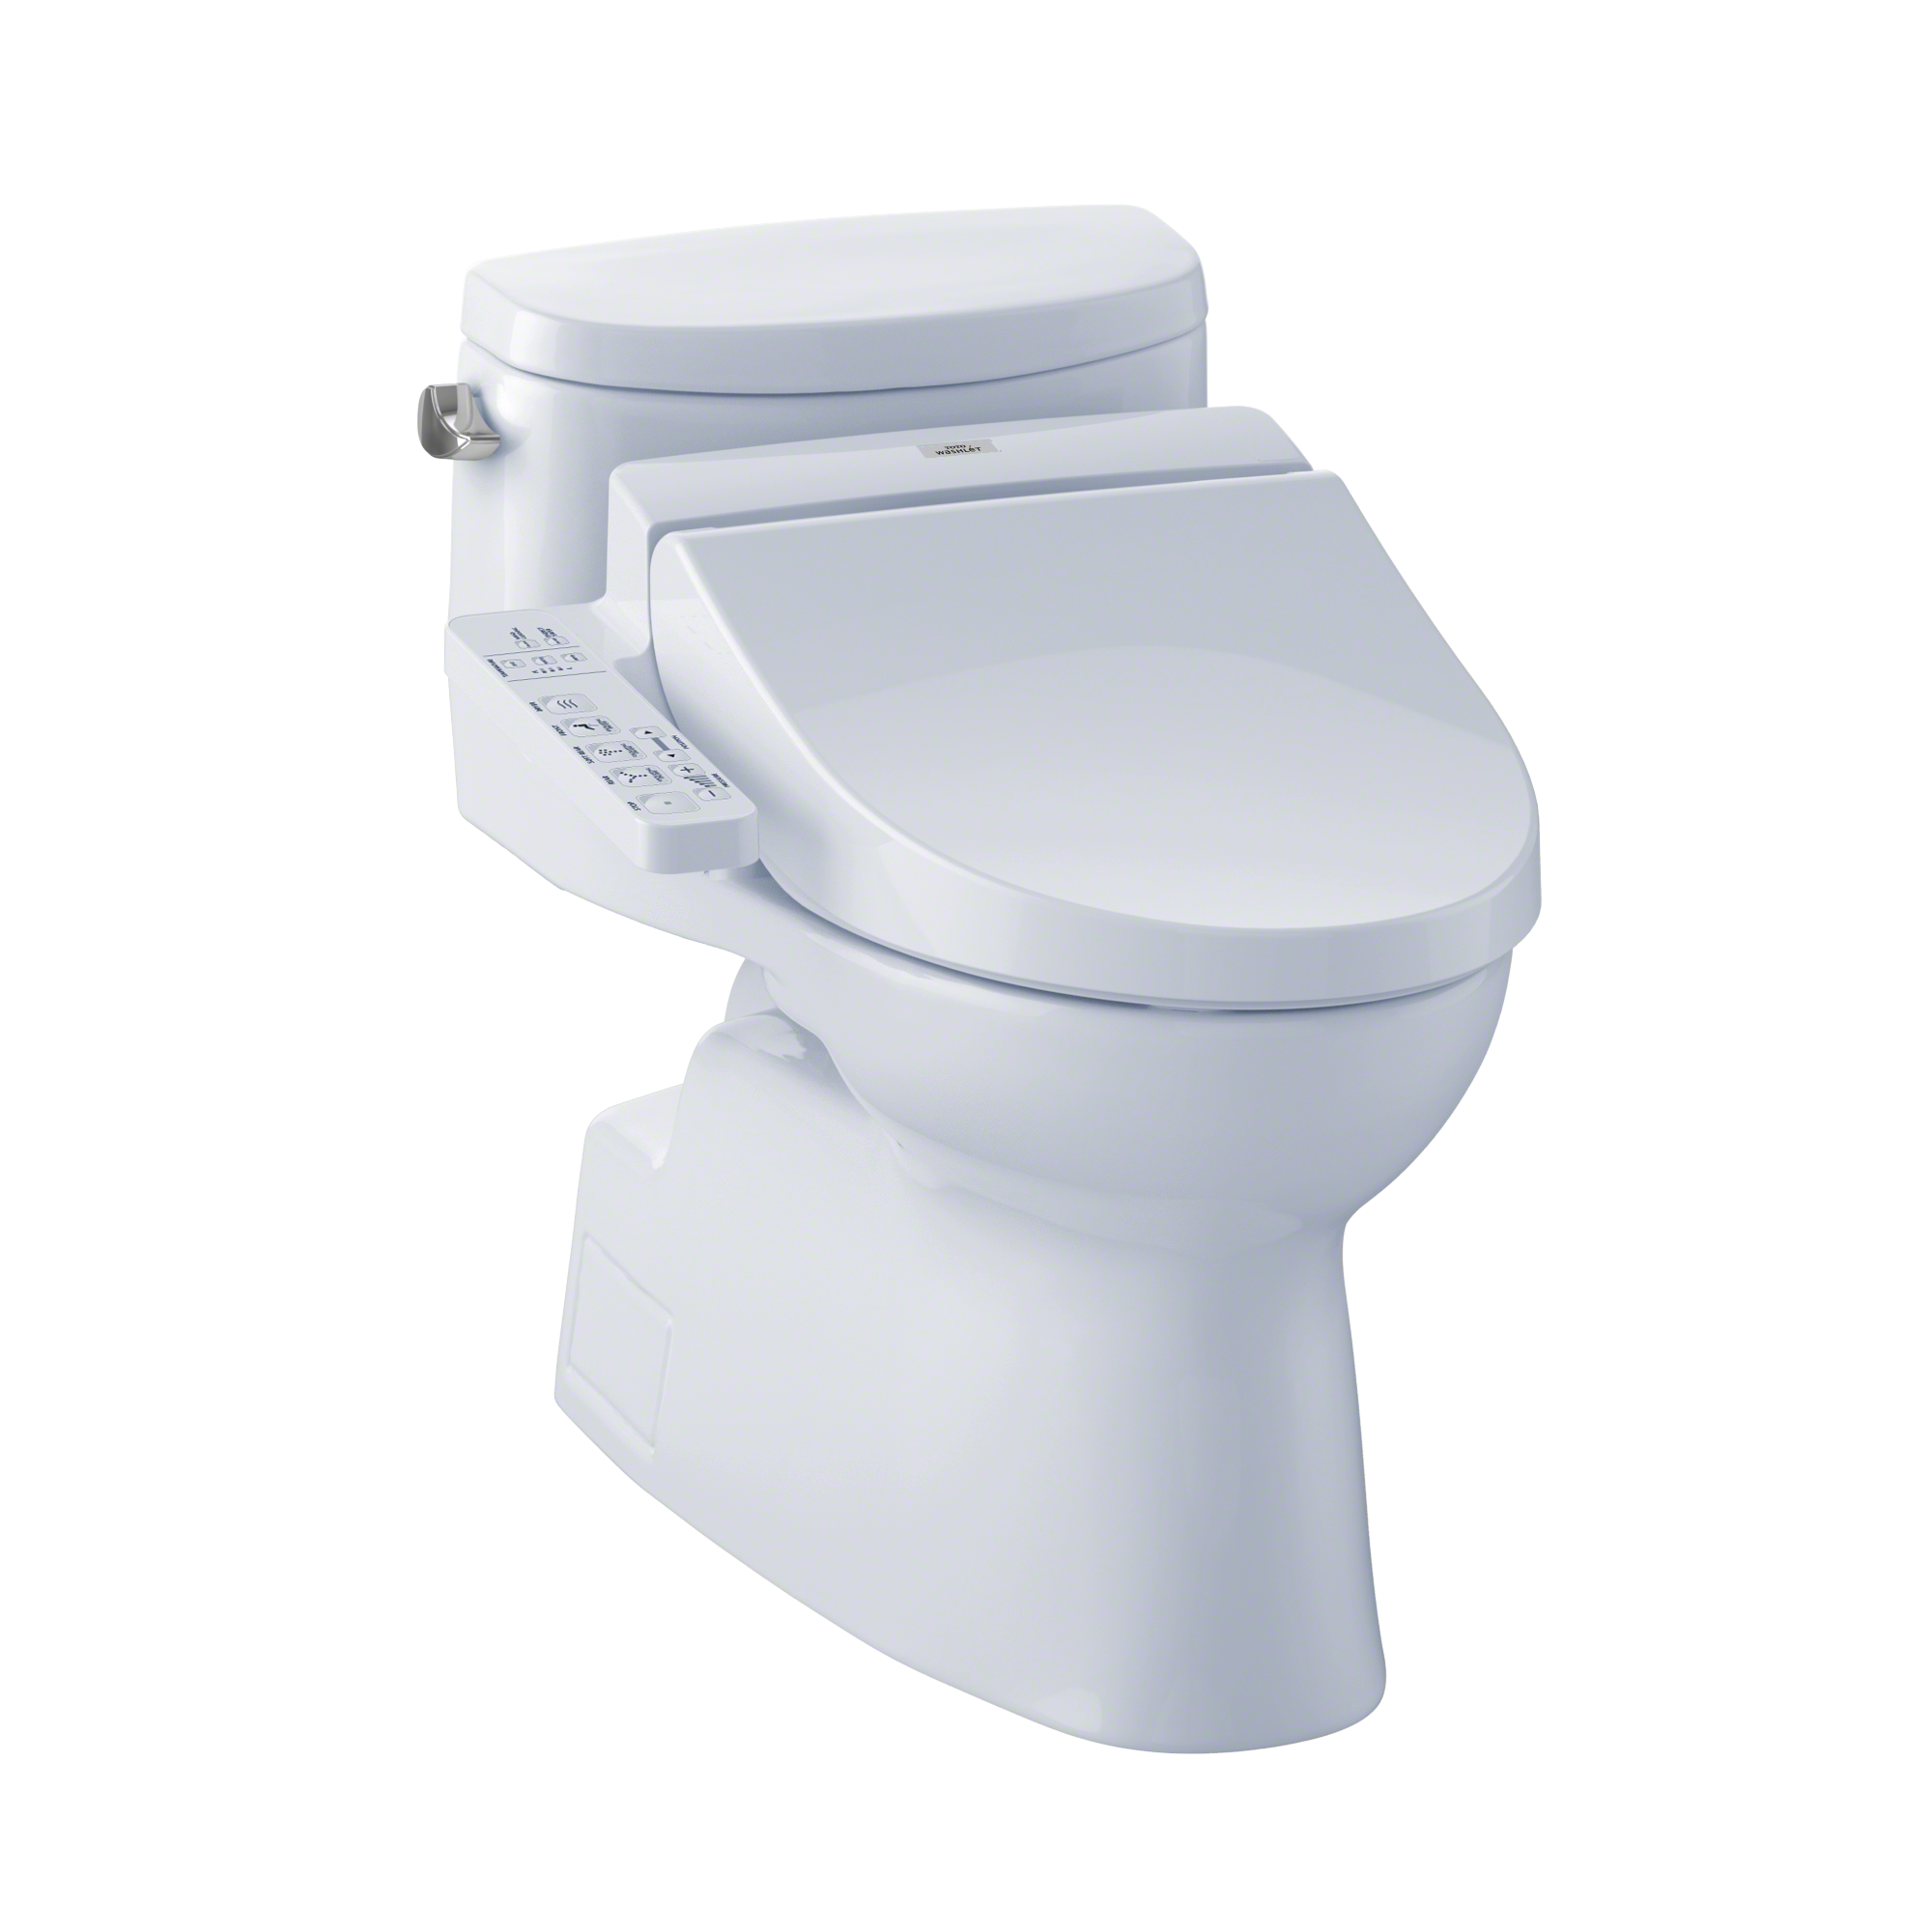 TOTO® Connect+® Kit Carolina® II One-Piece Elongated 1.28 GPF Toilet and Washlet® C100 Bidet Seat, Cotton White - MW6442034CEFG#01